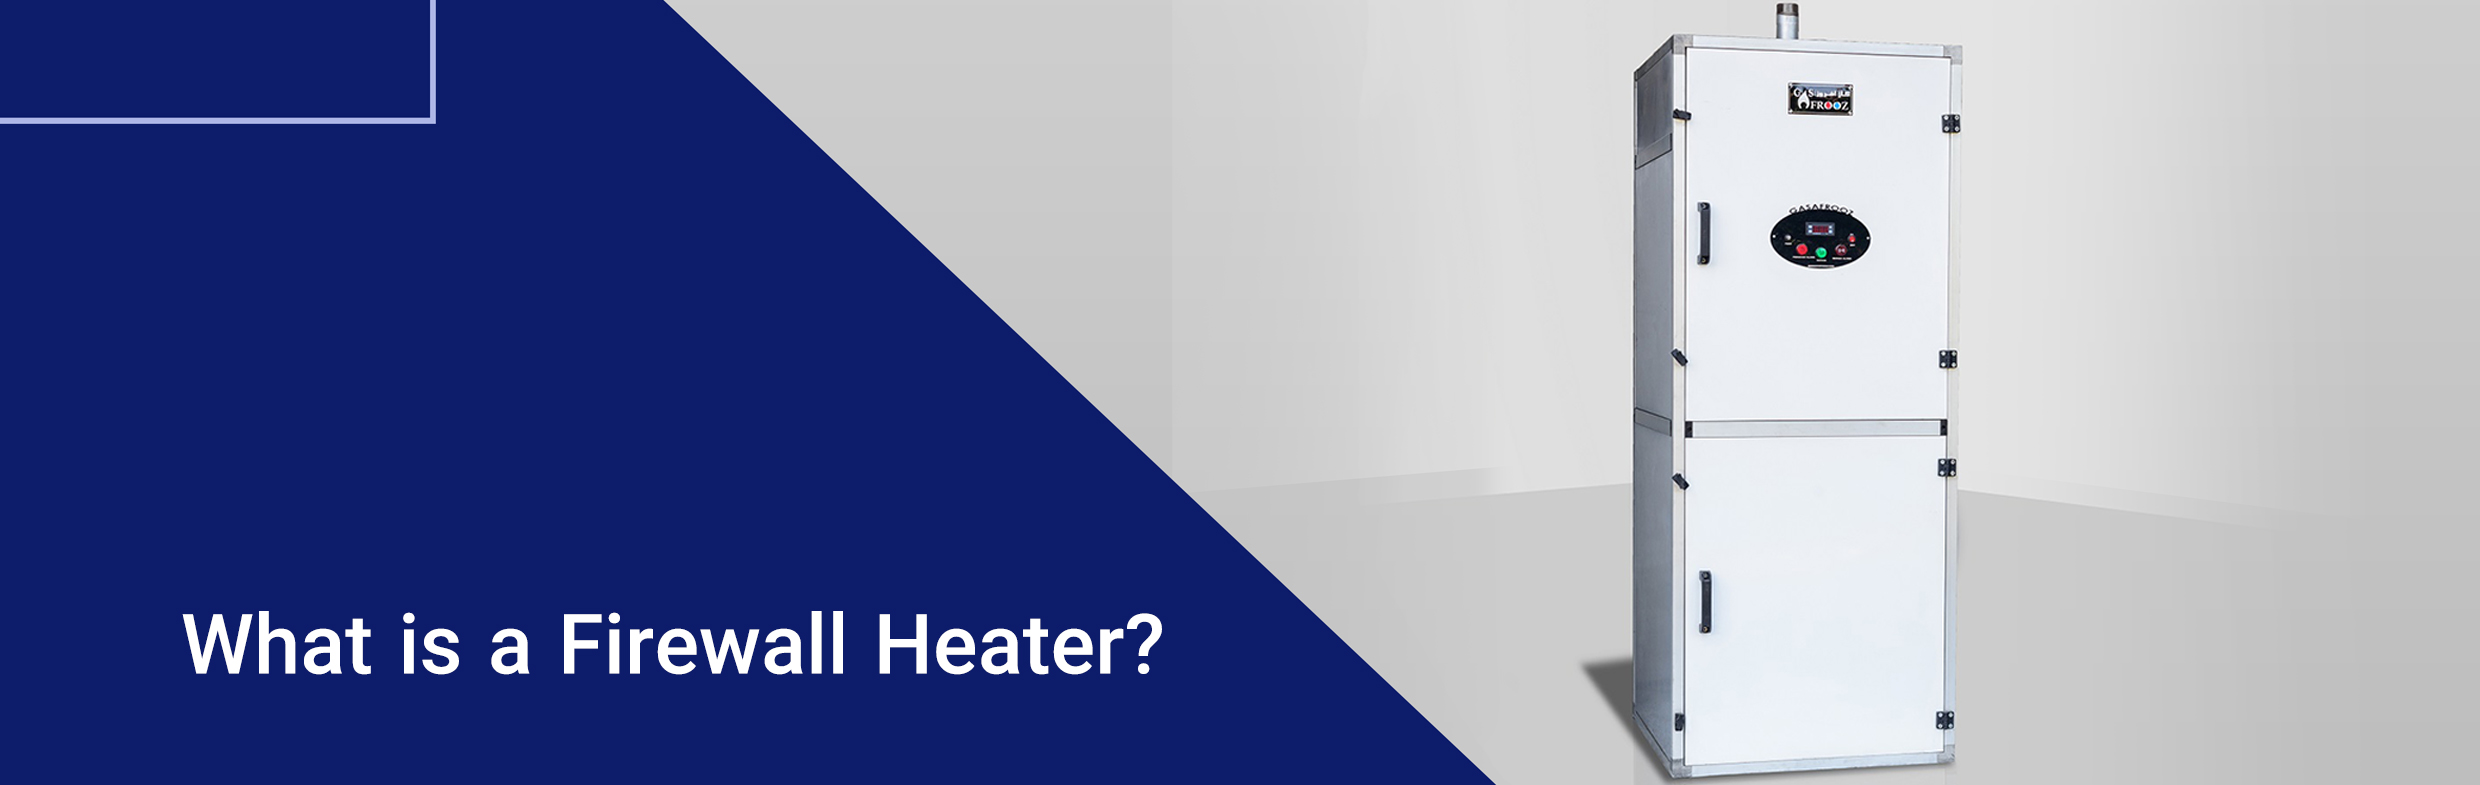 What is a Firewall Heater?